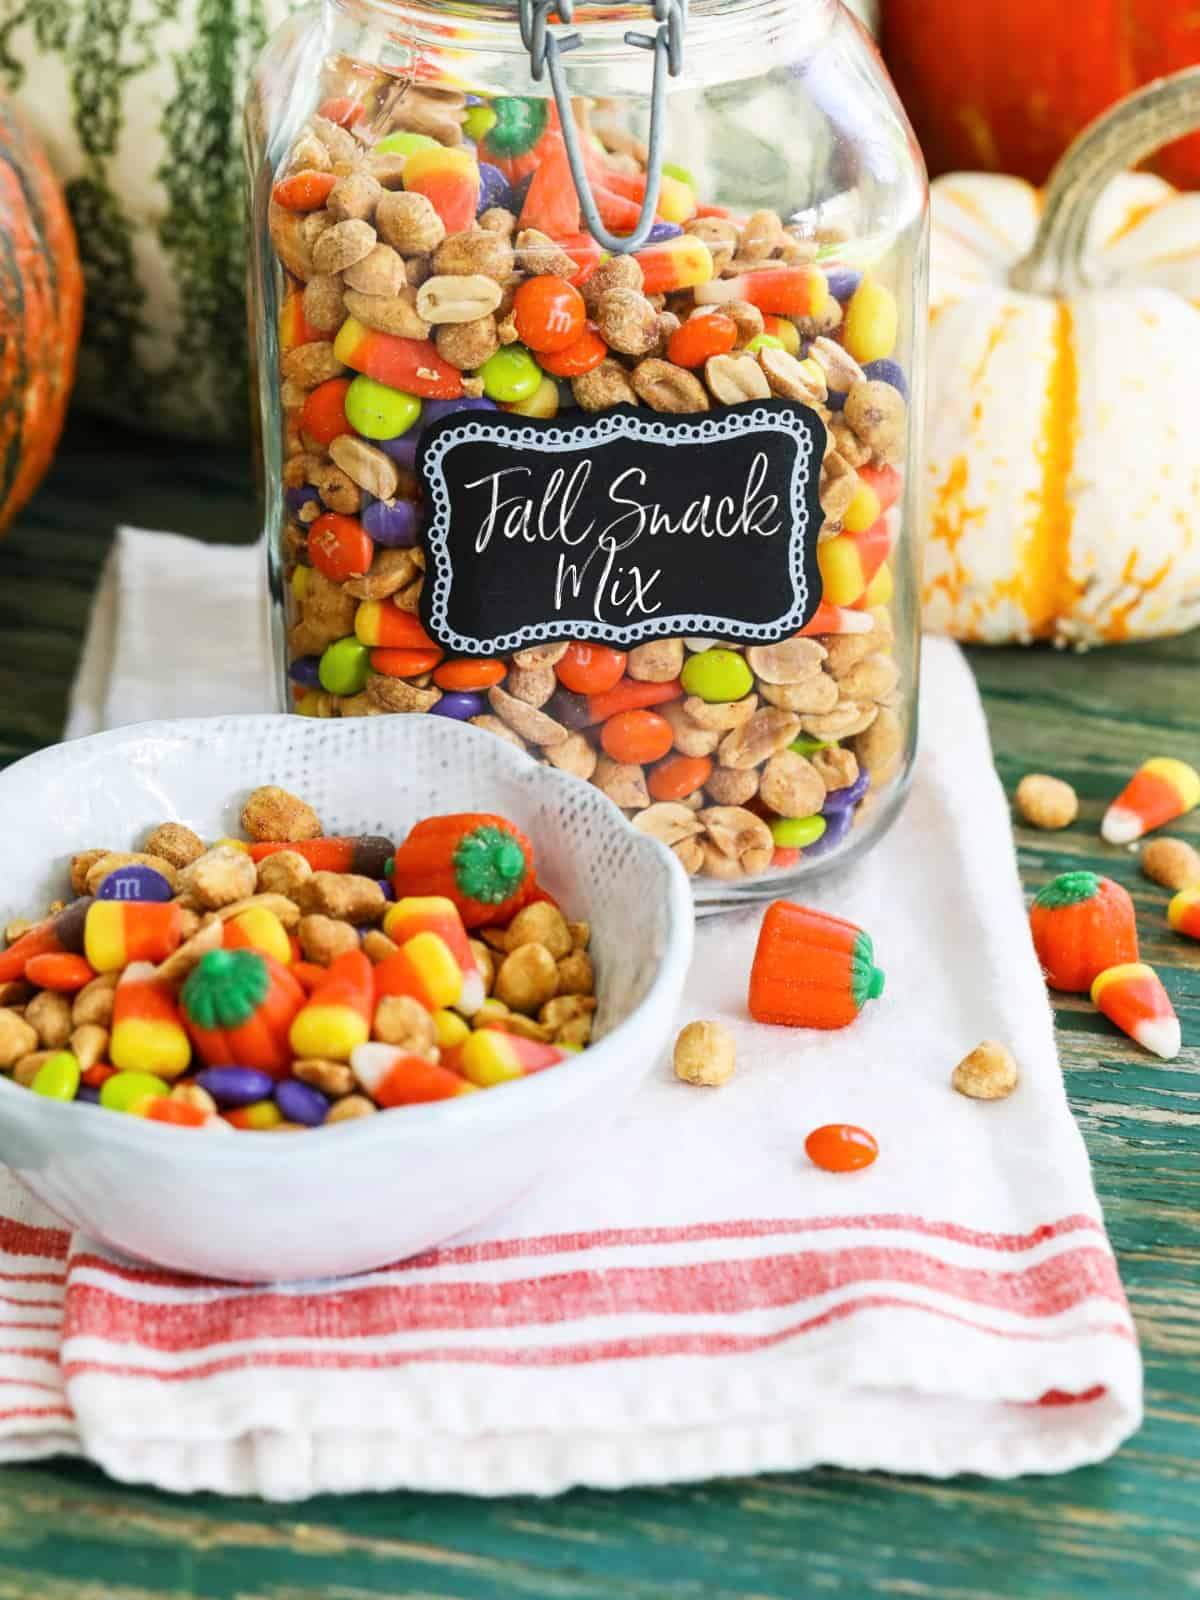 A large glass jar filled with a Fall Snack Mix with candy corn and M&Ms with a small bowl of it nearby.